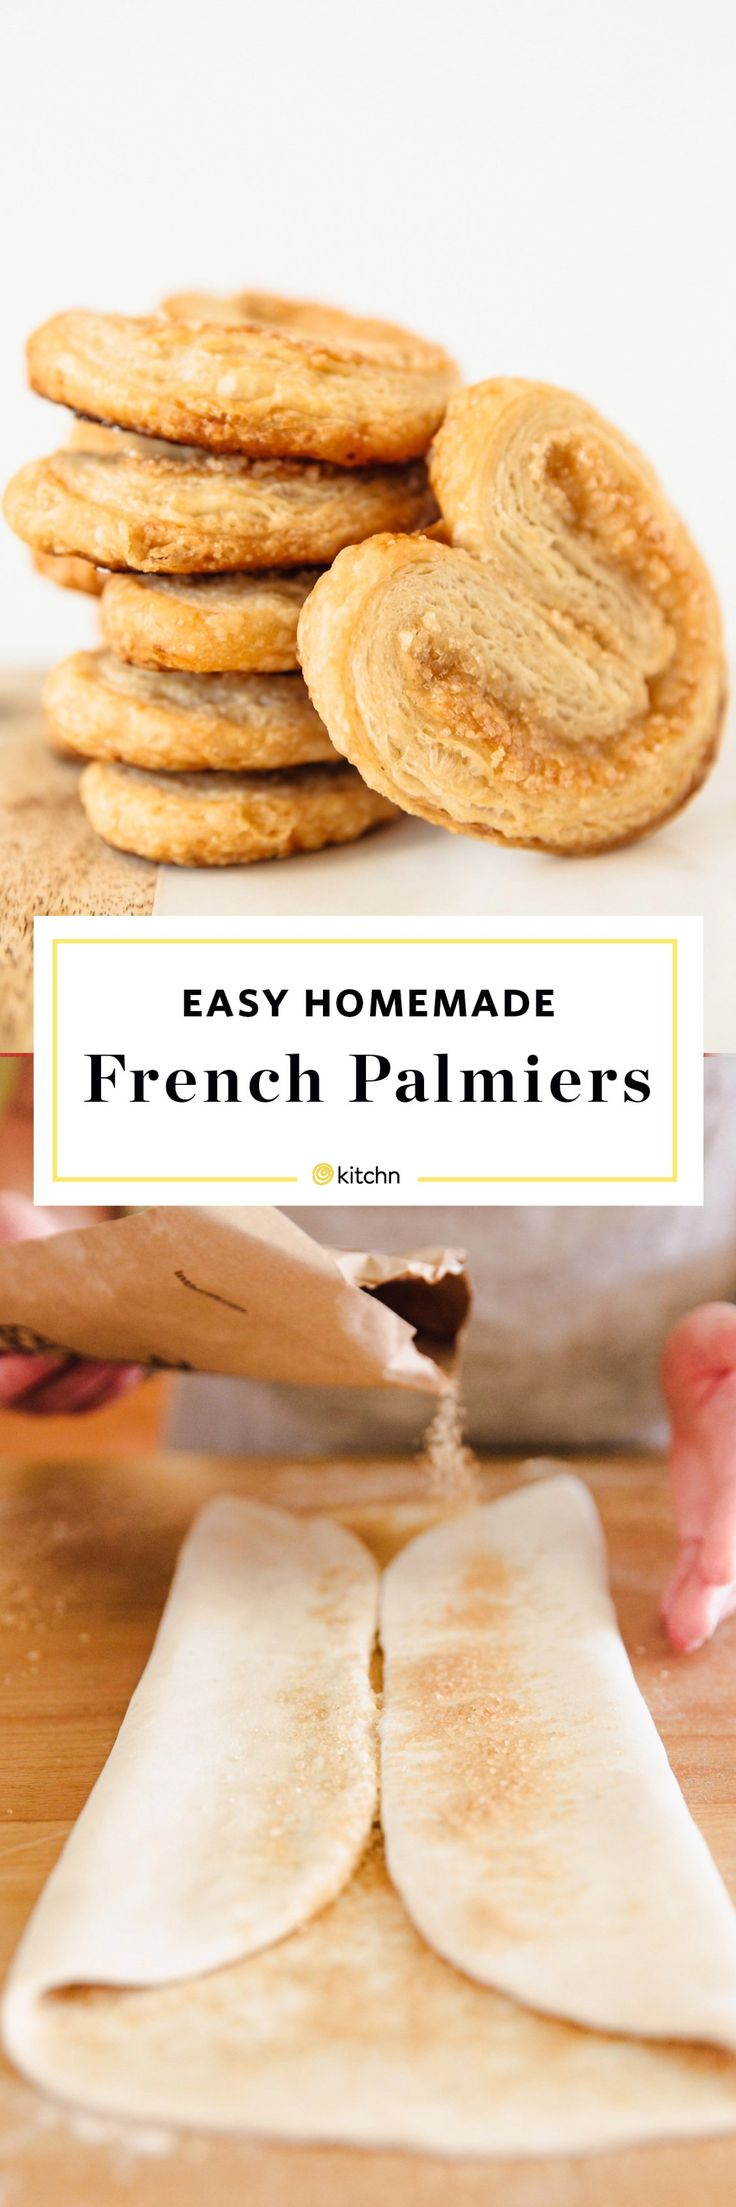 Homemade French Palmiers Recipe. This classic french pastry dessert is perfect if you're looking for ideas and recipes for easy holiday Christmas cookies, or even a simple Valentine's Day dessert! You only need puff pastry and sugar to make this simple treat. No one will know how simple it is!